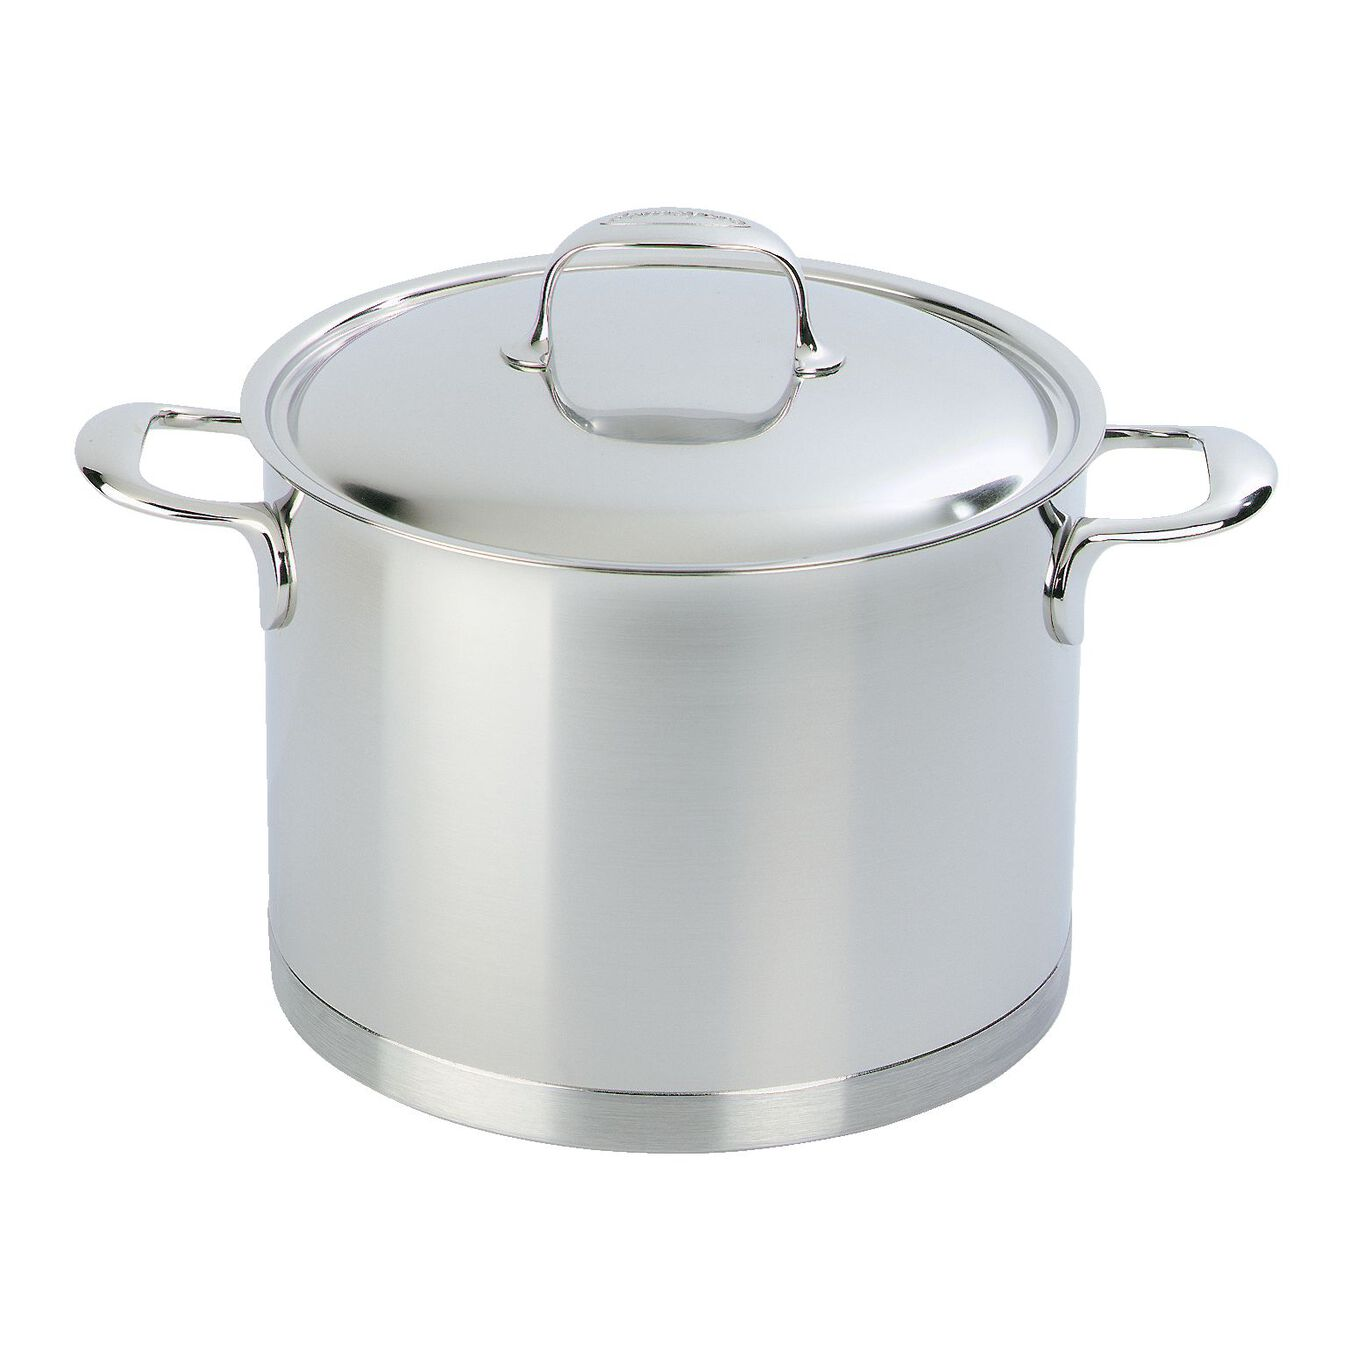 8.5-qt Stainless Steel Stock Pot,,large 2